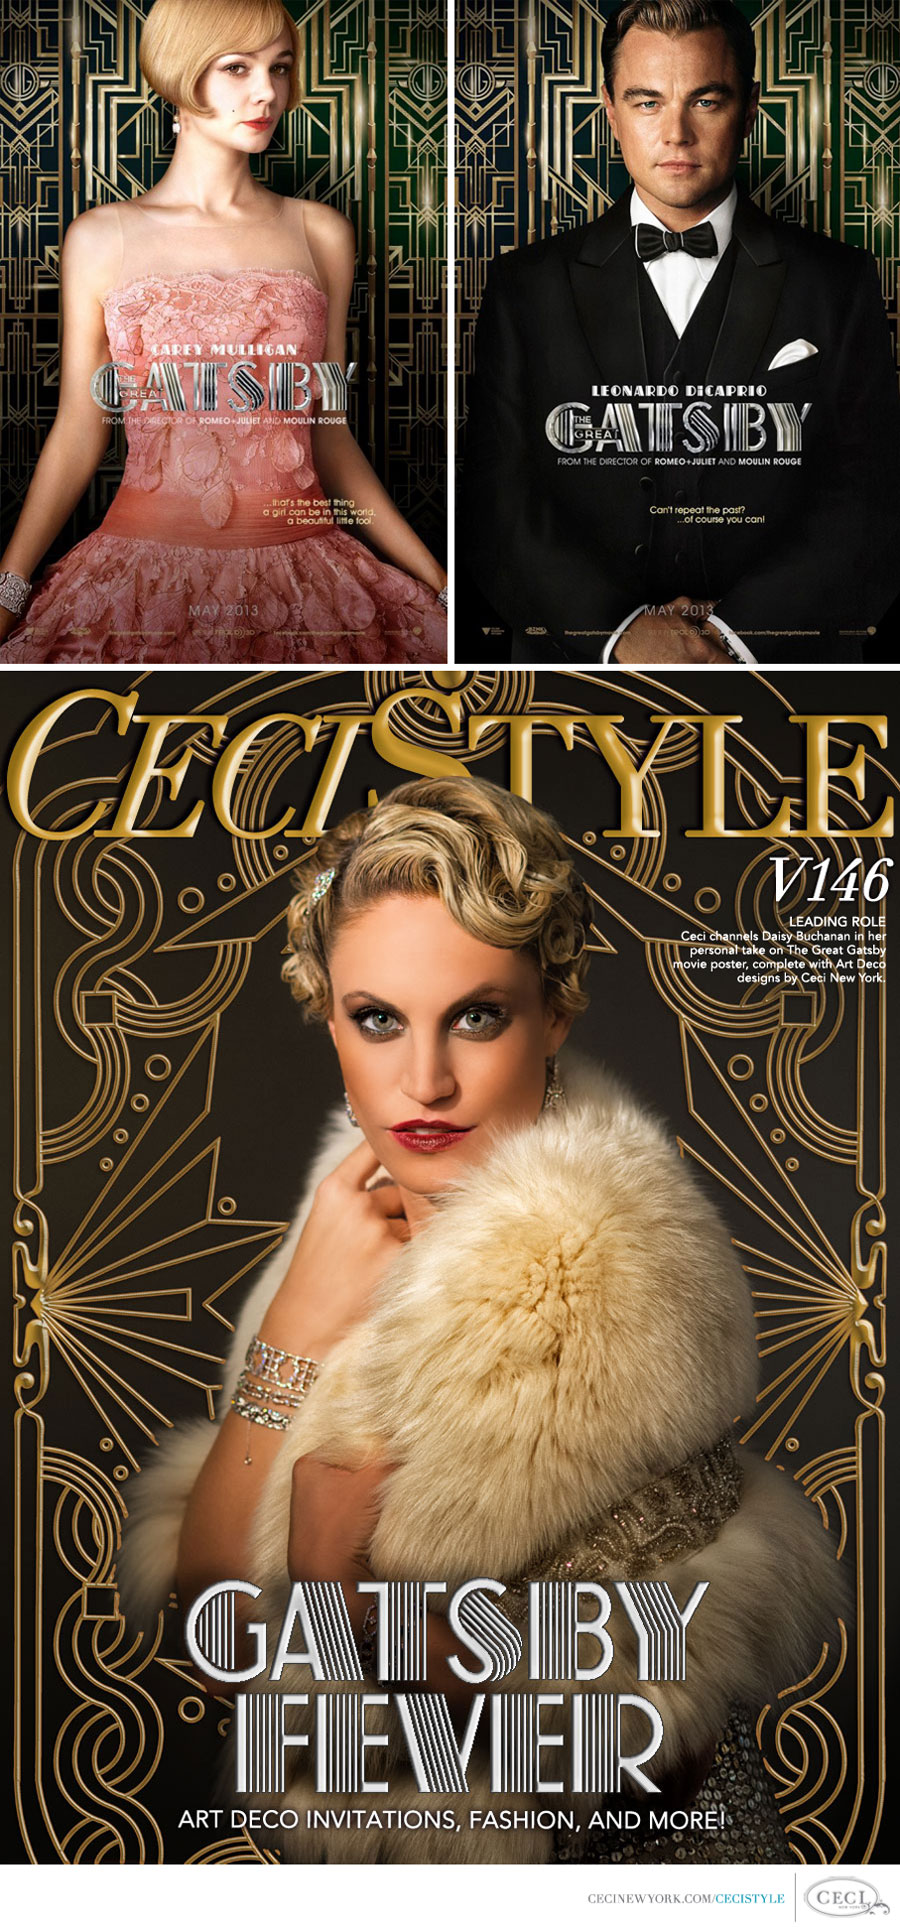 Ceci Johnson of Ceci New York - LEADING ROLE - Ceci channels Daisy Buchanan in her personal take on The Great Gatsby movie poster, complete with Art Deco designs by Ceci New York. Shot by Brian Marcus of Fred Marcus Photography.